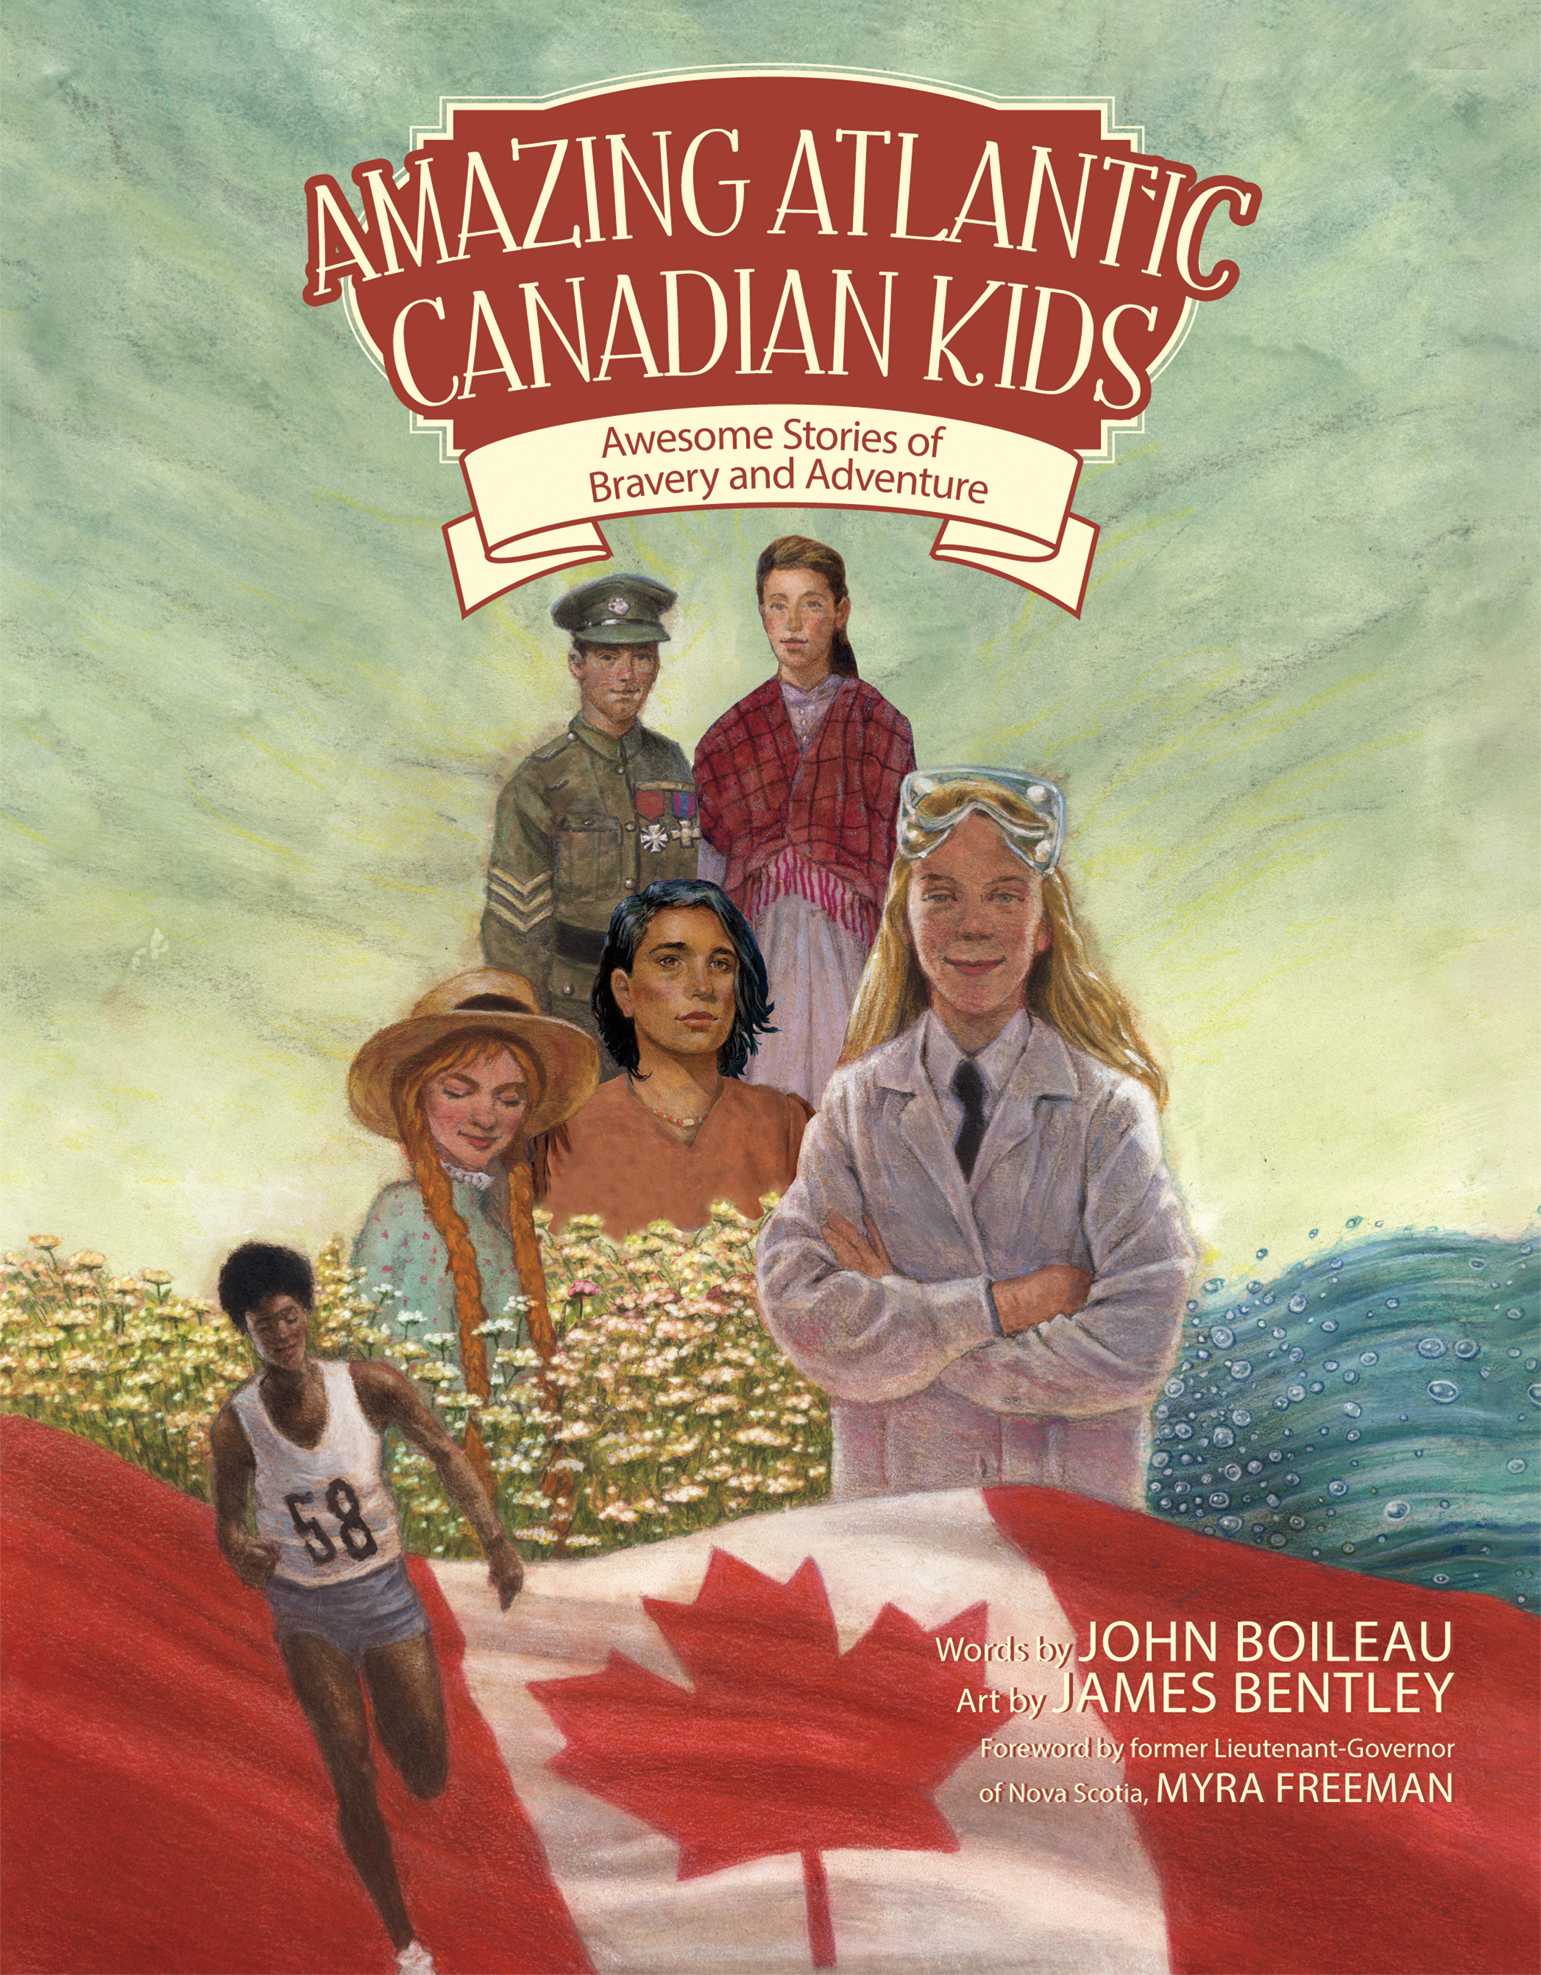 Amazing Atlantic Canadian Kids